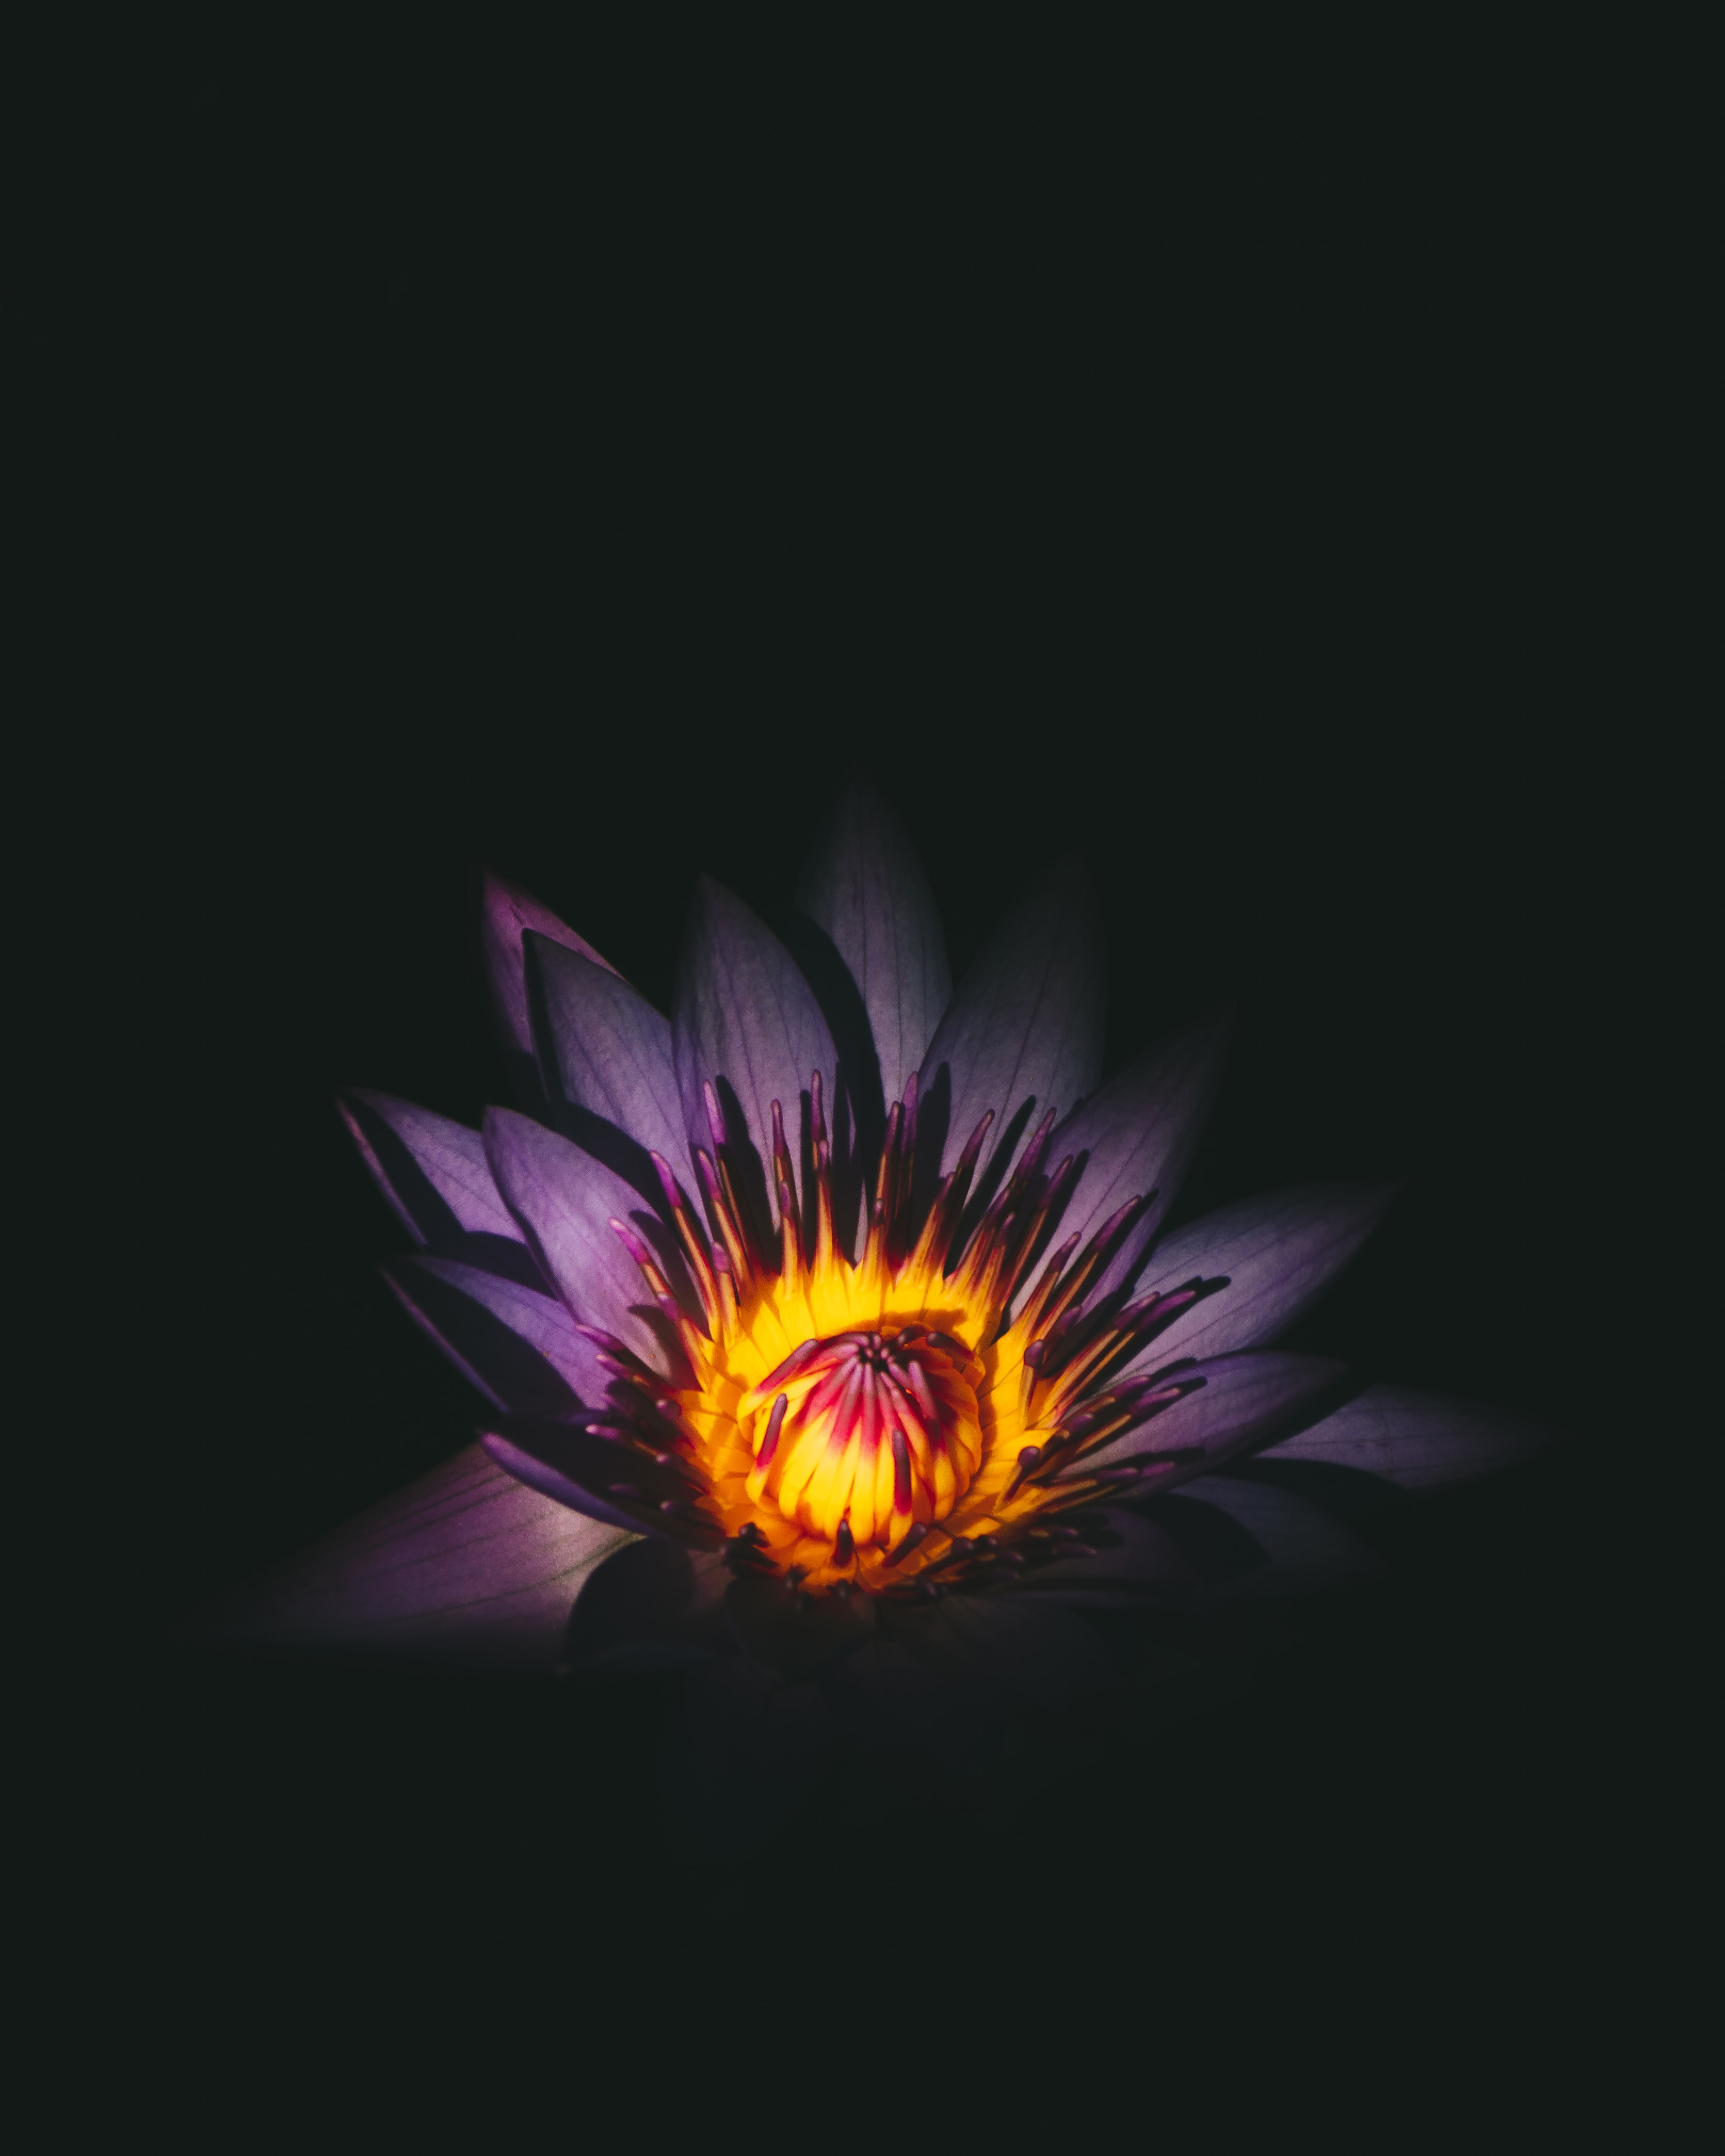 A close-up of a dark purple flower with a yellow center against a black background